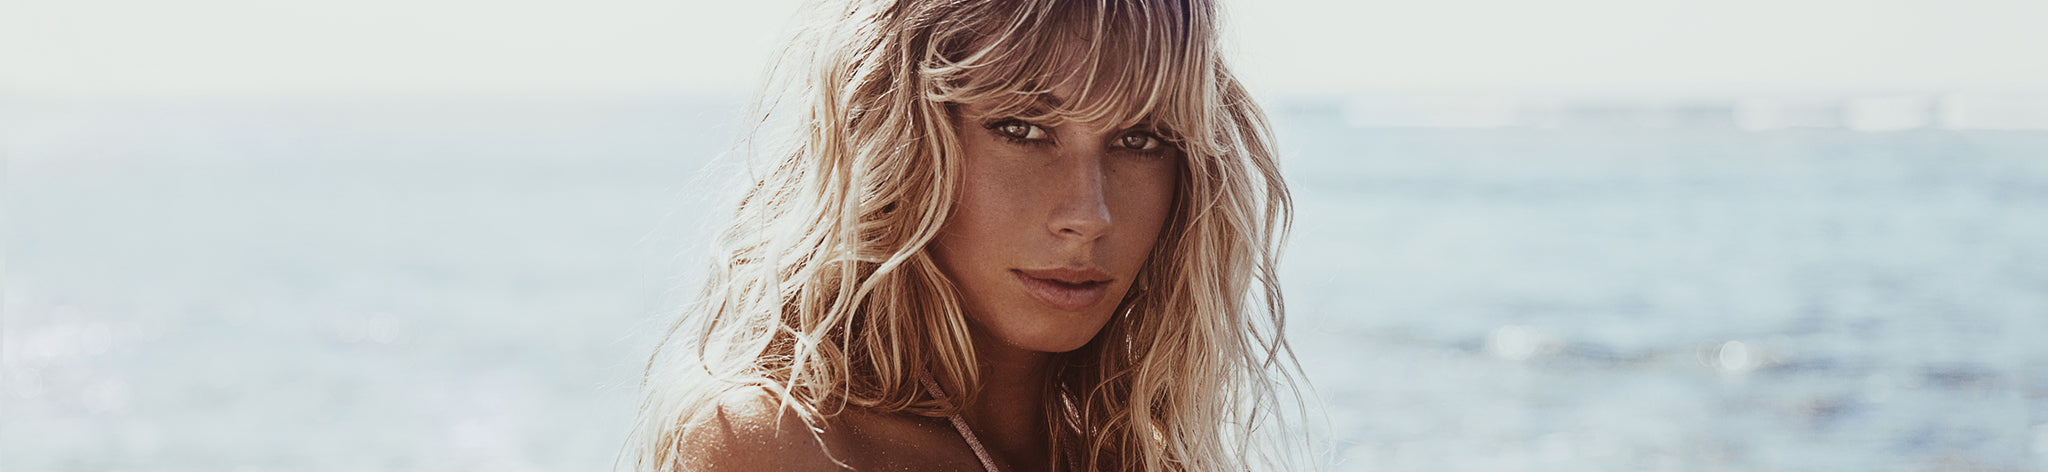 Indaia Swim's muse Madeline Relph showing her Australian native beauty with salty blonde hair at the beach